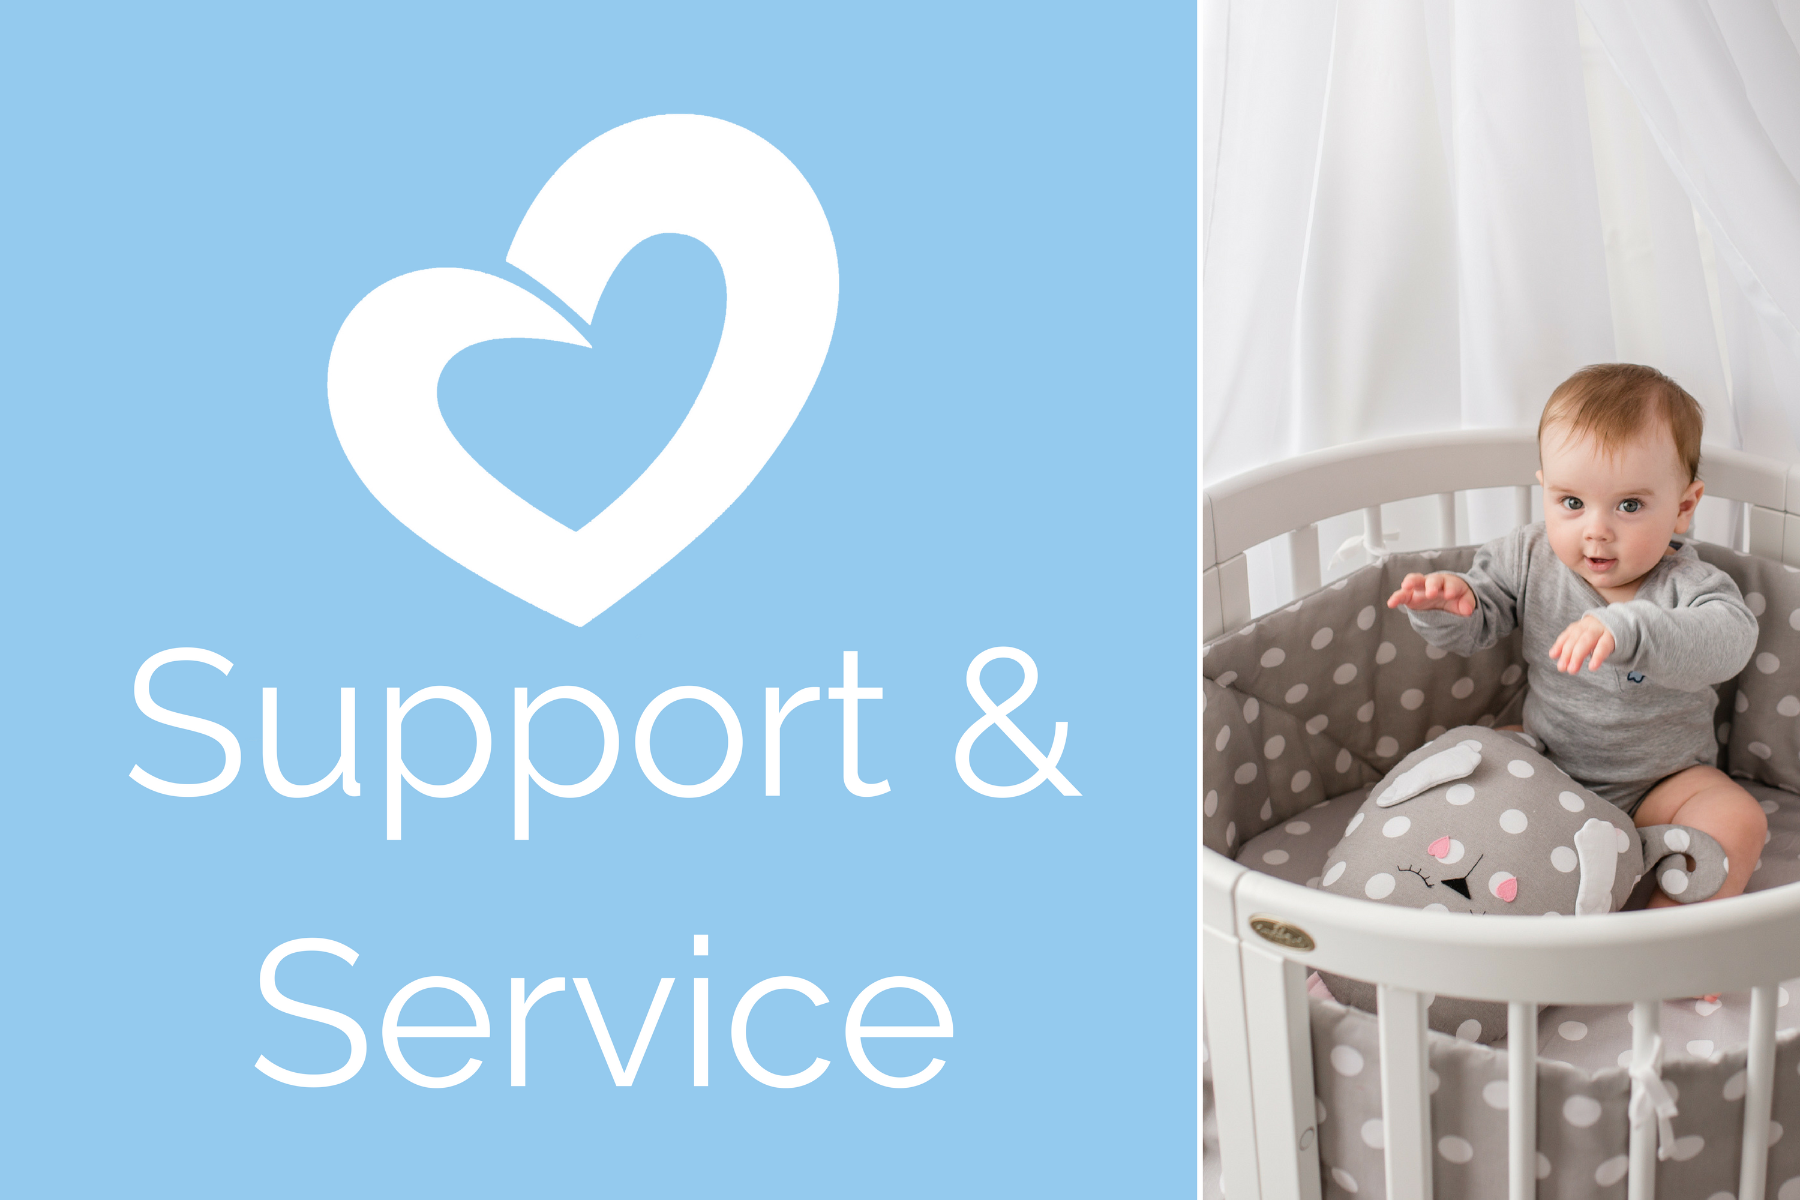 Support & Service